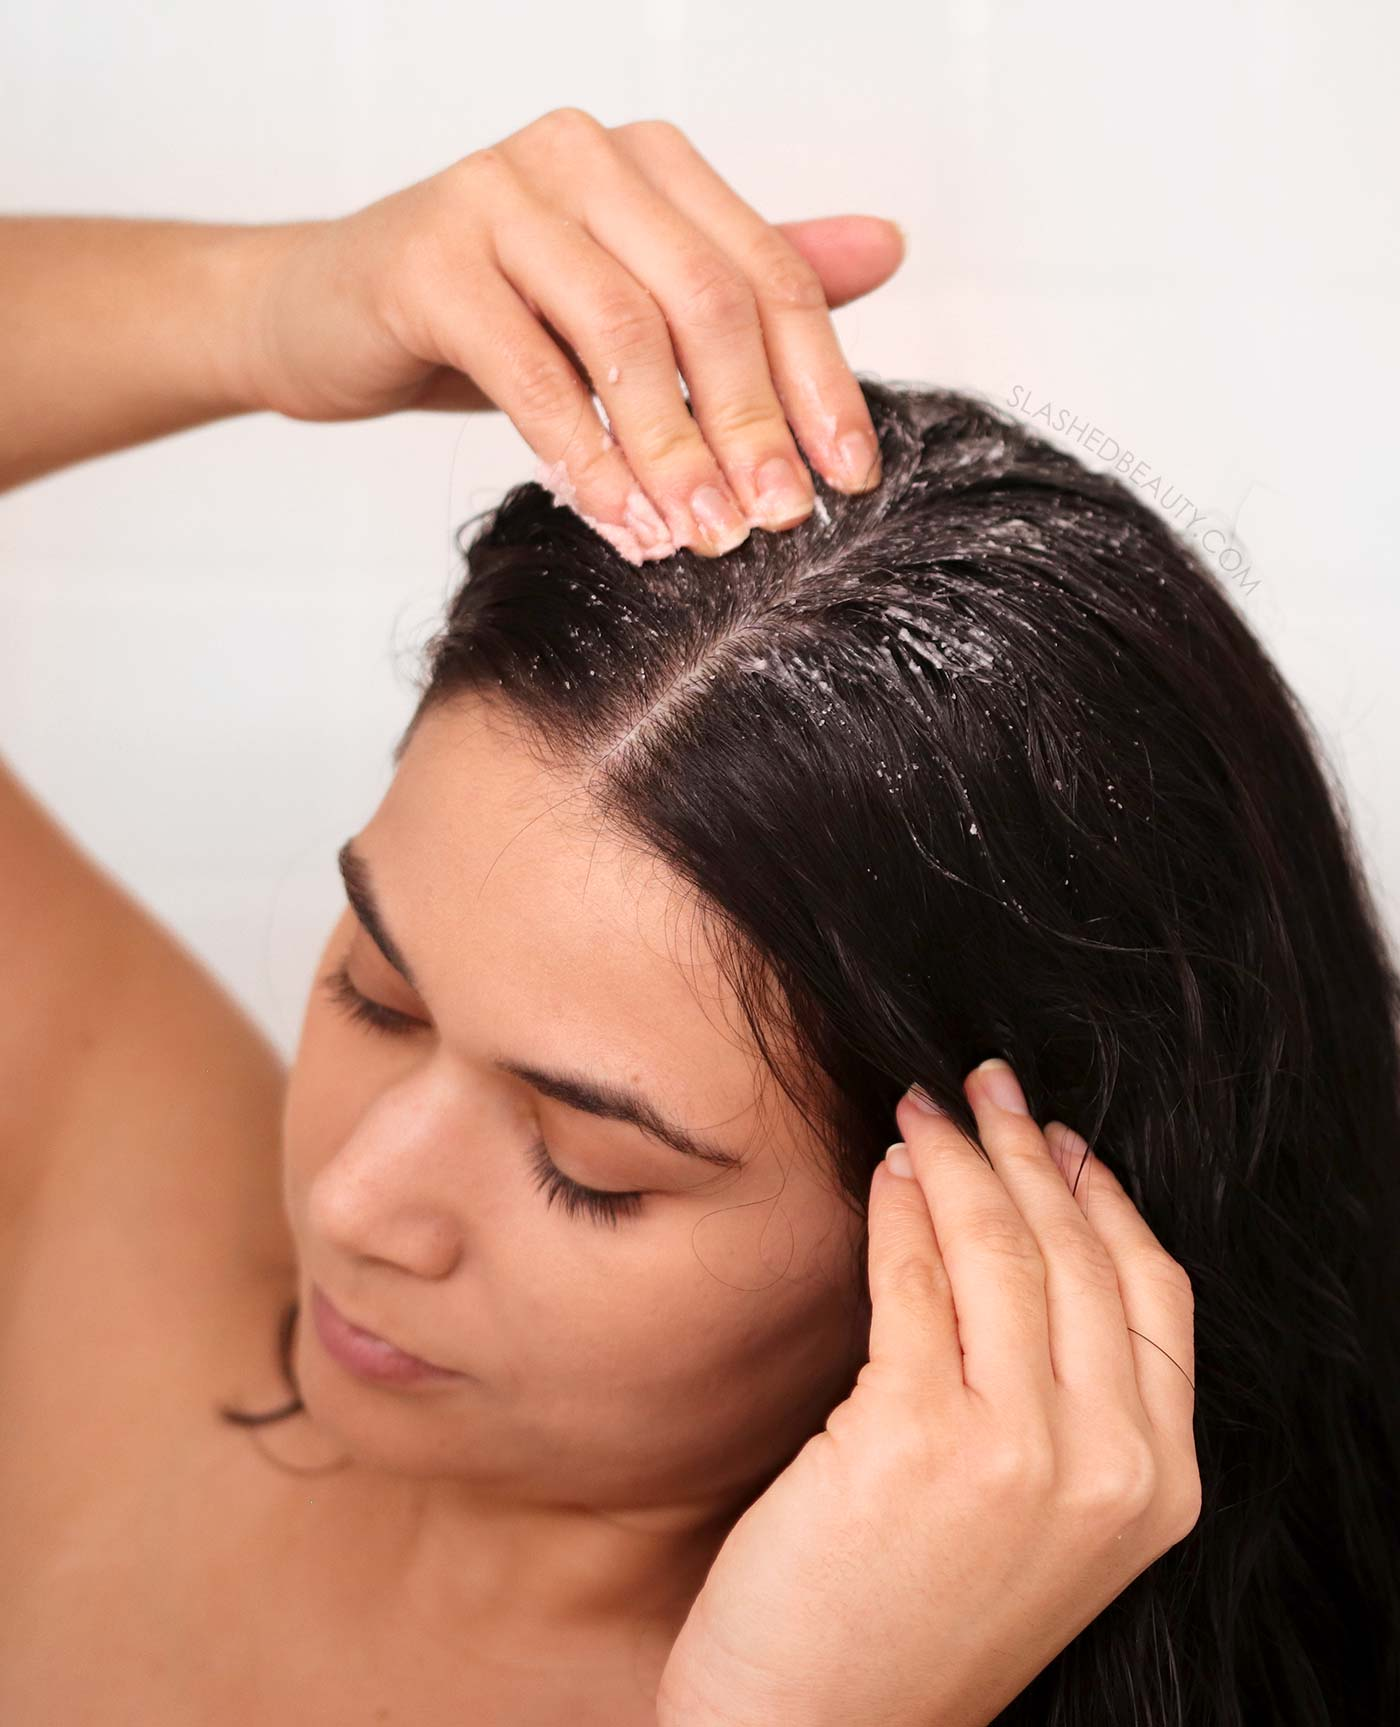 Scalp Detox: Exfoliating Using Scalp Scrub for Oily Hair, Flaky Scalp | Scalp Care Routine for Dandruff, Smelly Hair and Dry Scalp | Slashed Beauty